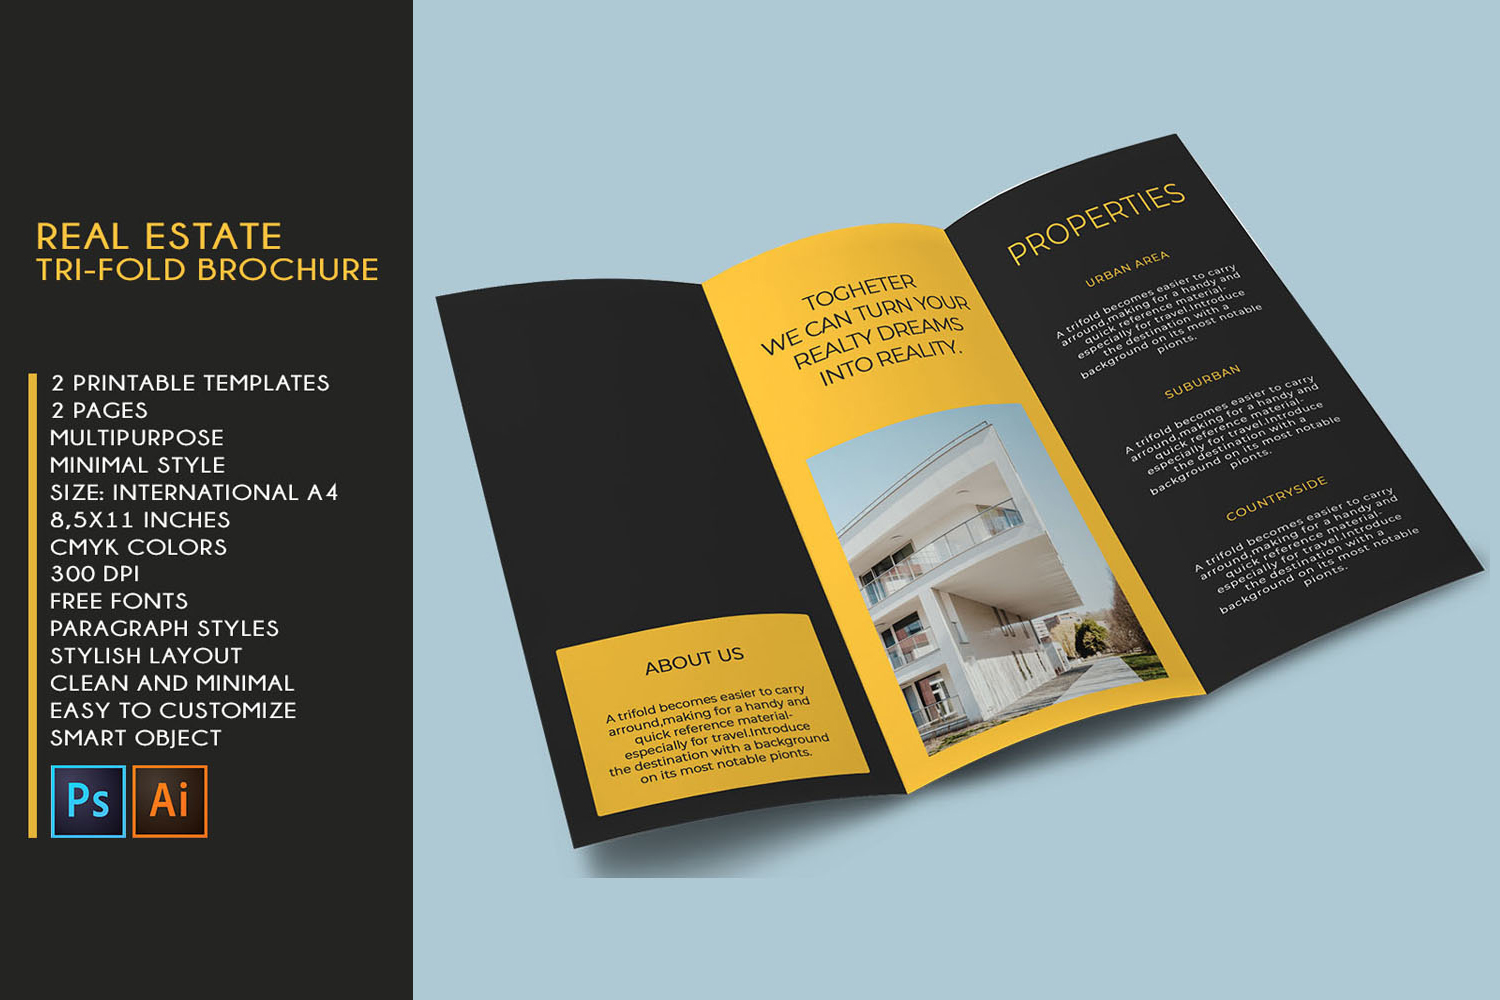 Trifold Real Estate Printable Brochure |Templates PSD/AI A4